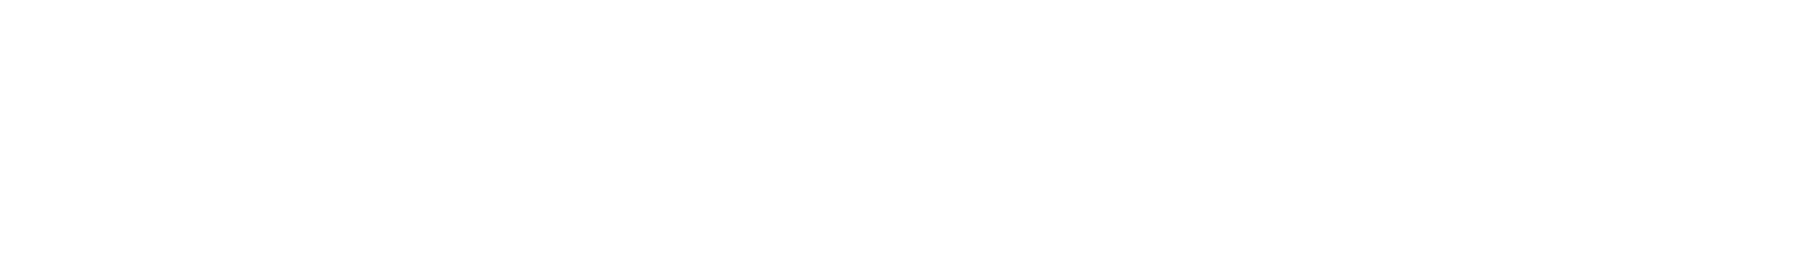 veh1 cutted sounds   144